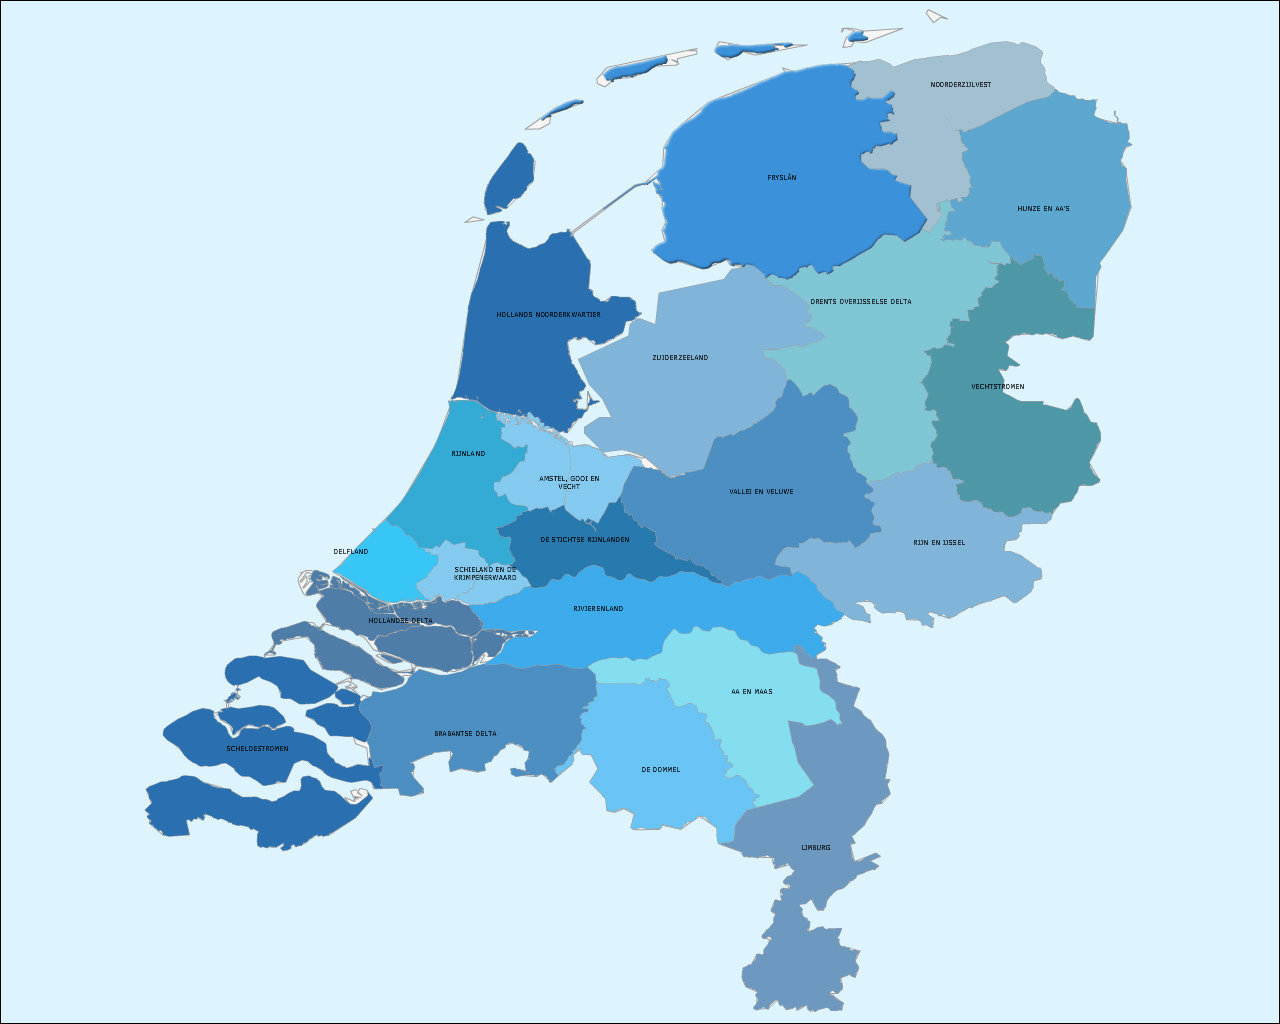 Dutch water authorities